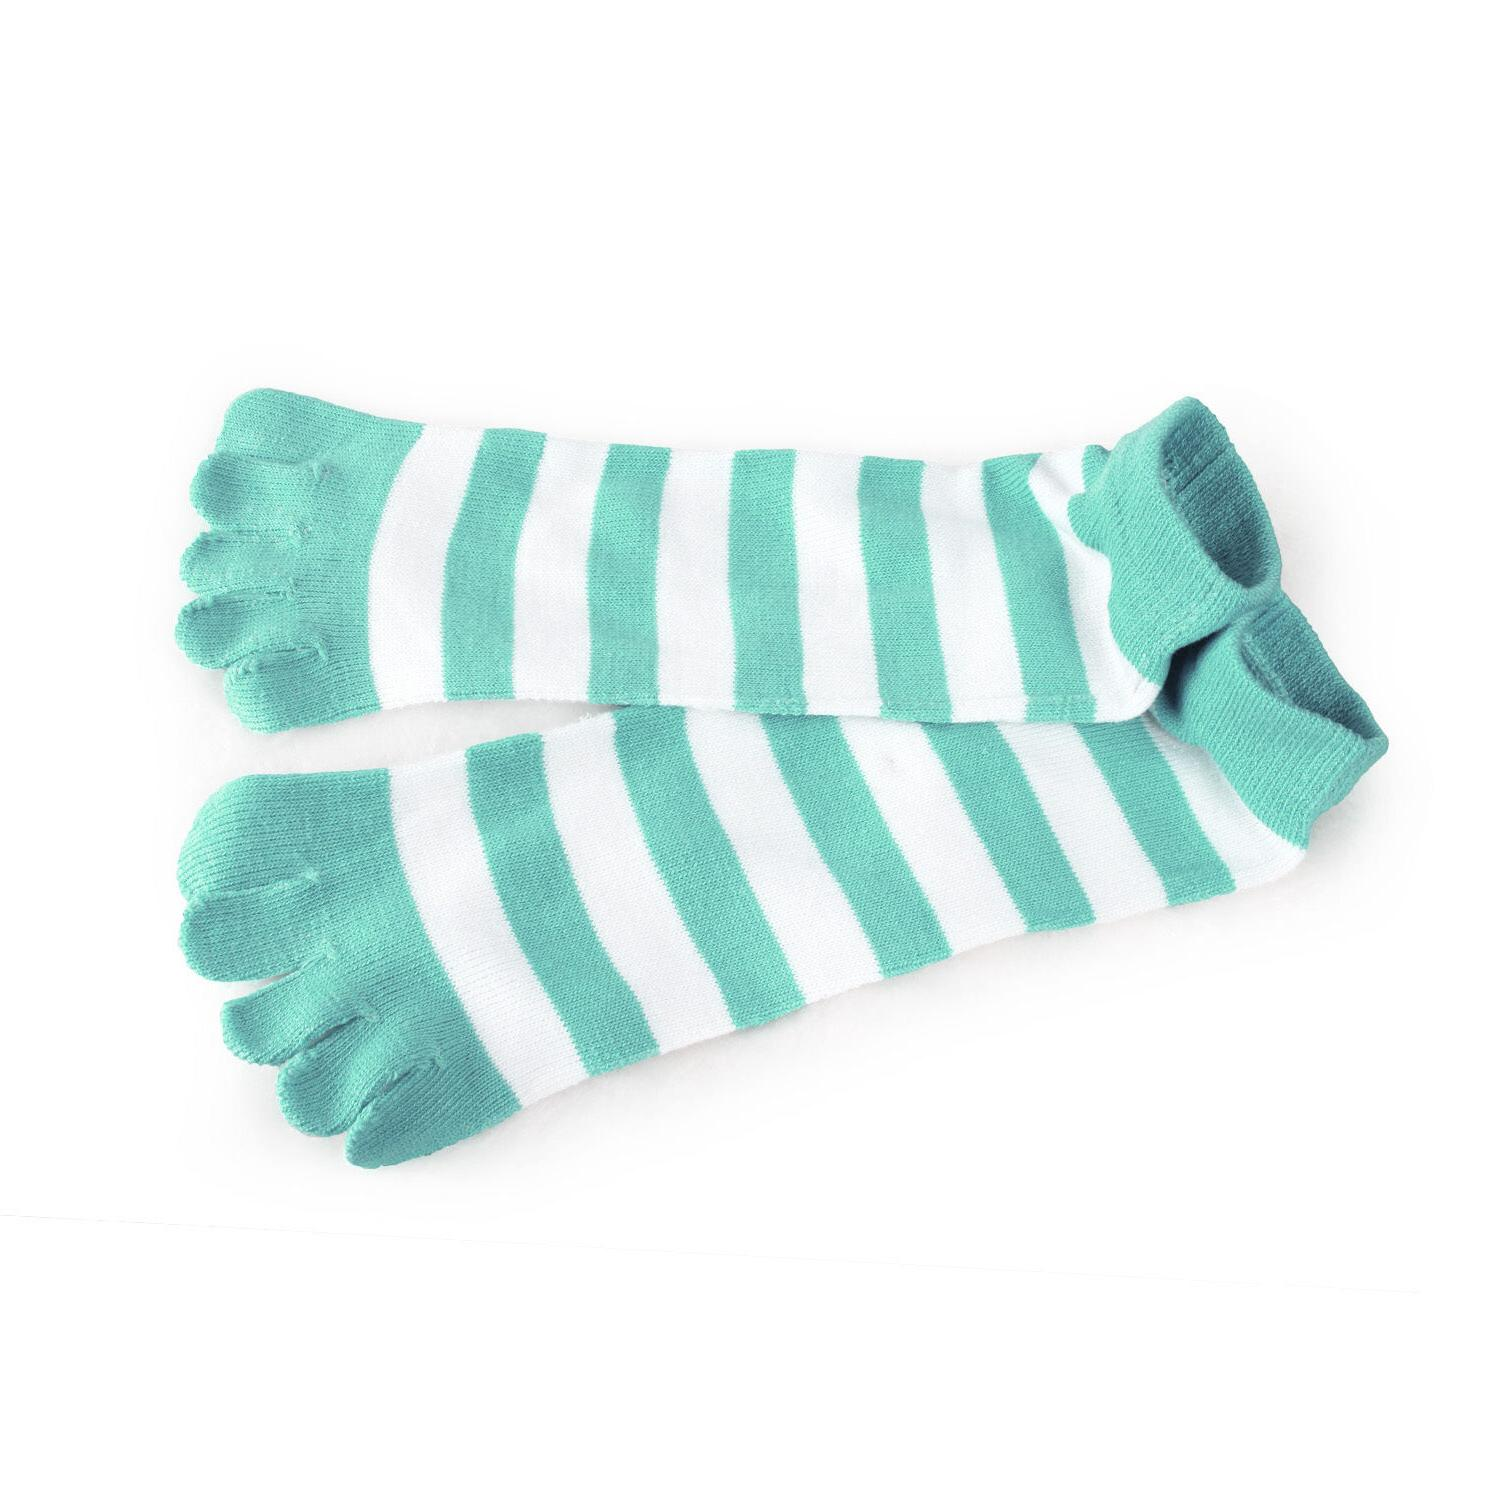 6 Pairs Soft Girls 9-11 Fun Color